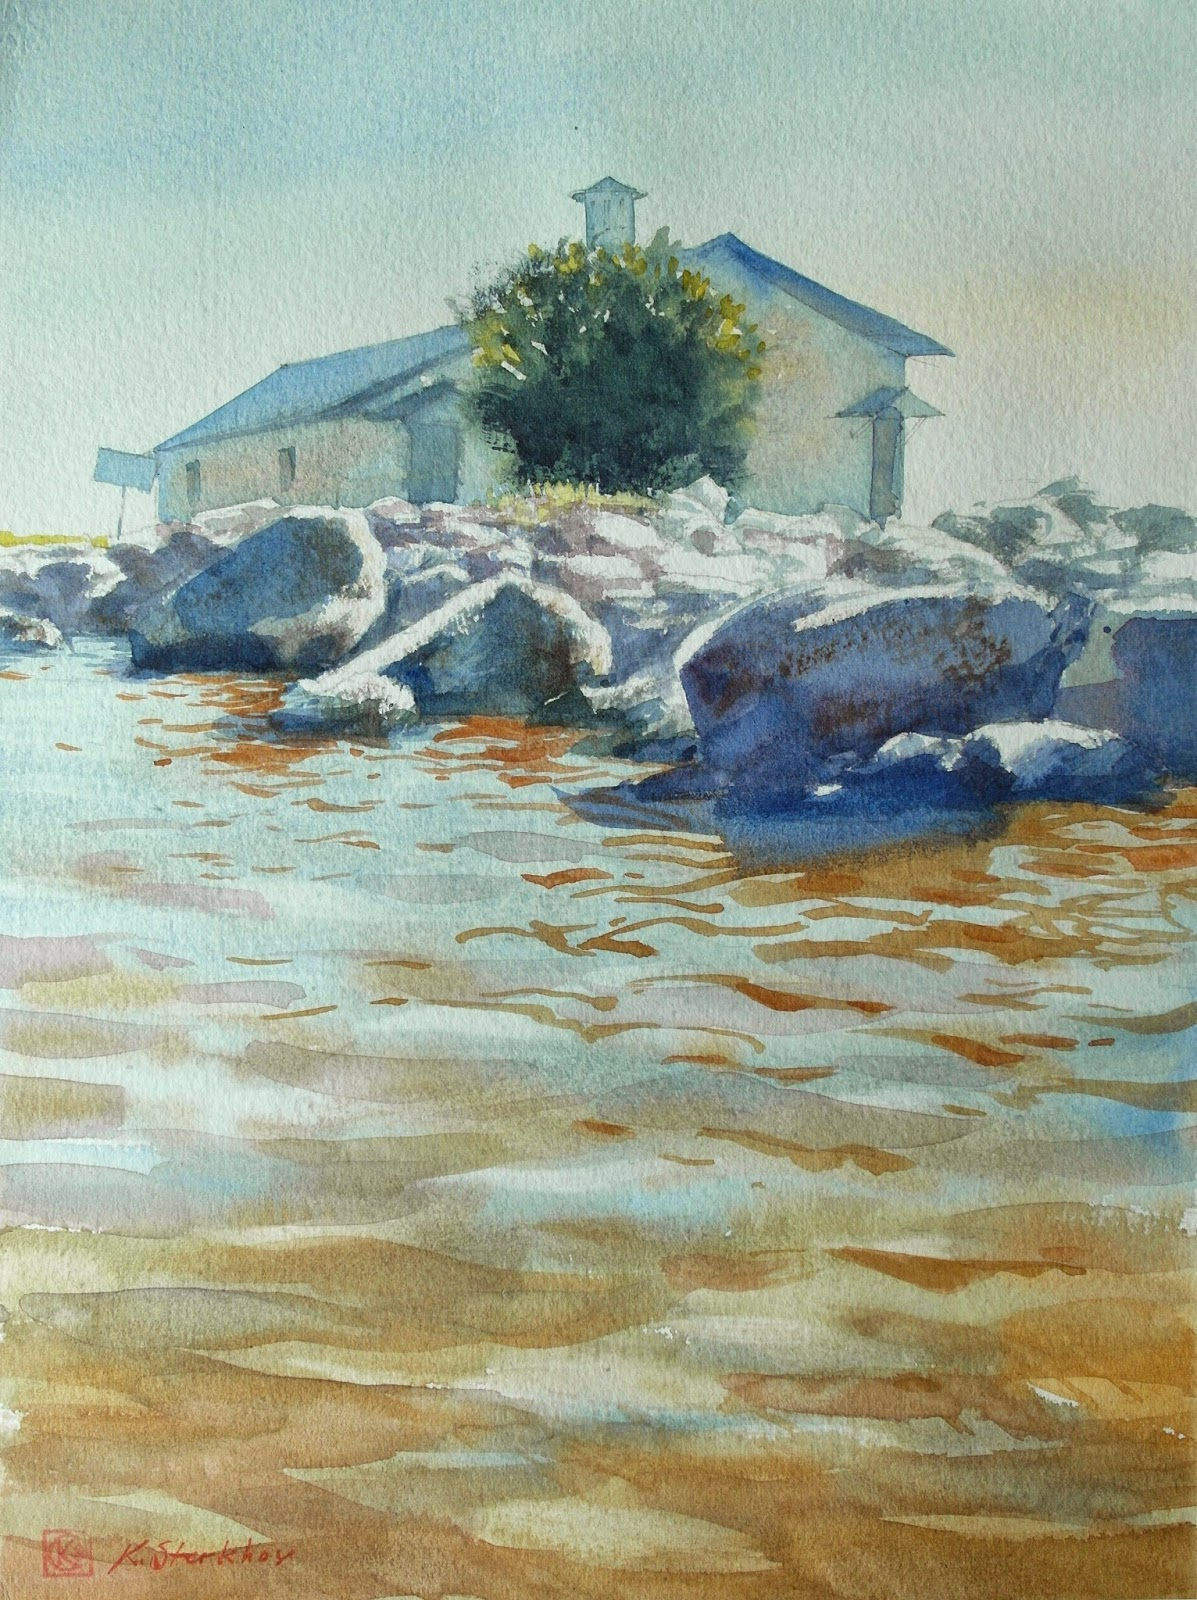 Art Of Watercolor: Water Surface, Reflection